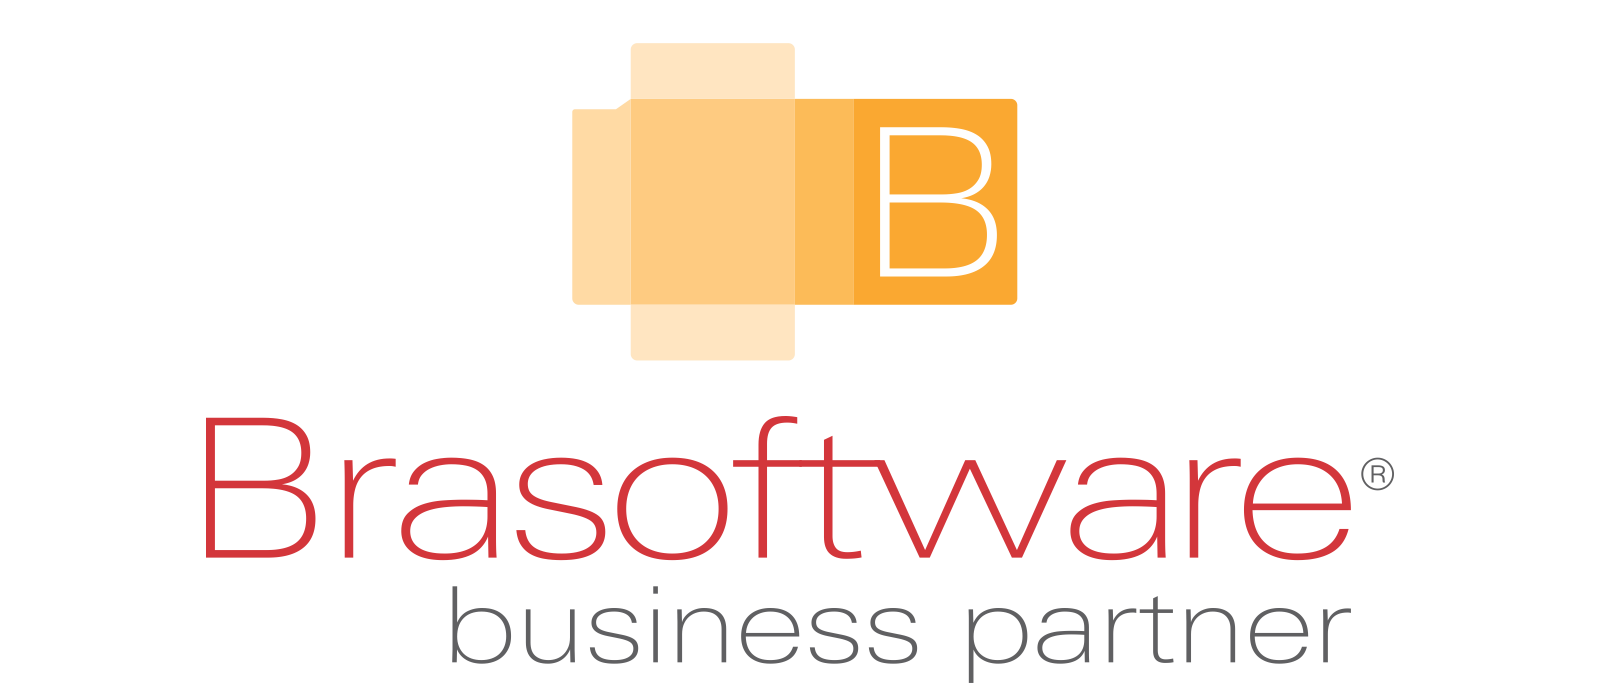 Logo Brasoftware Partner